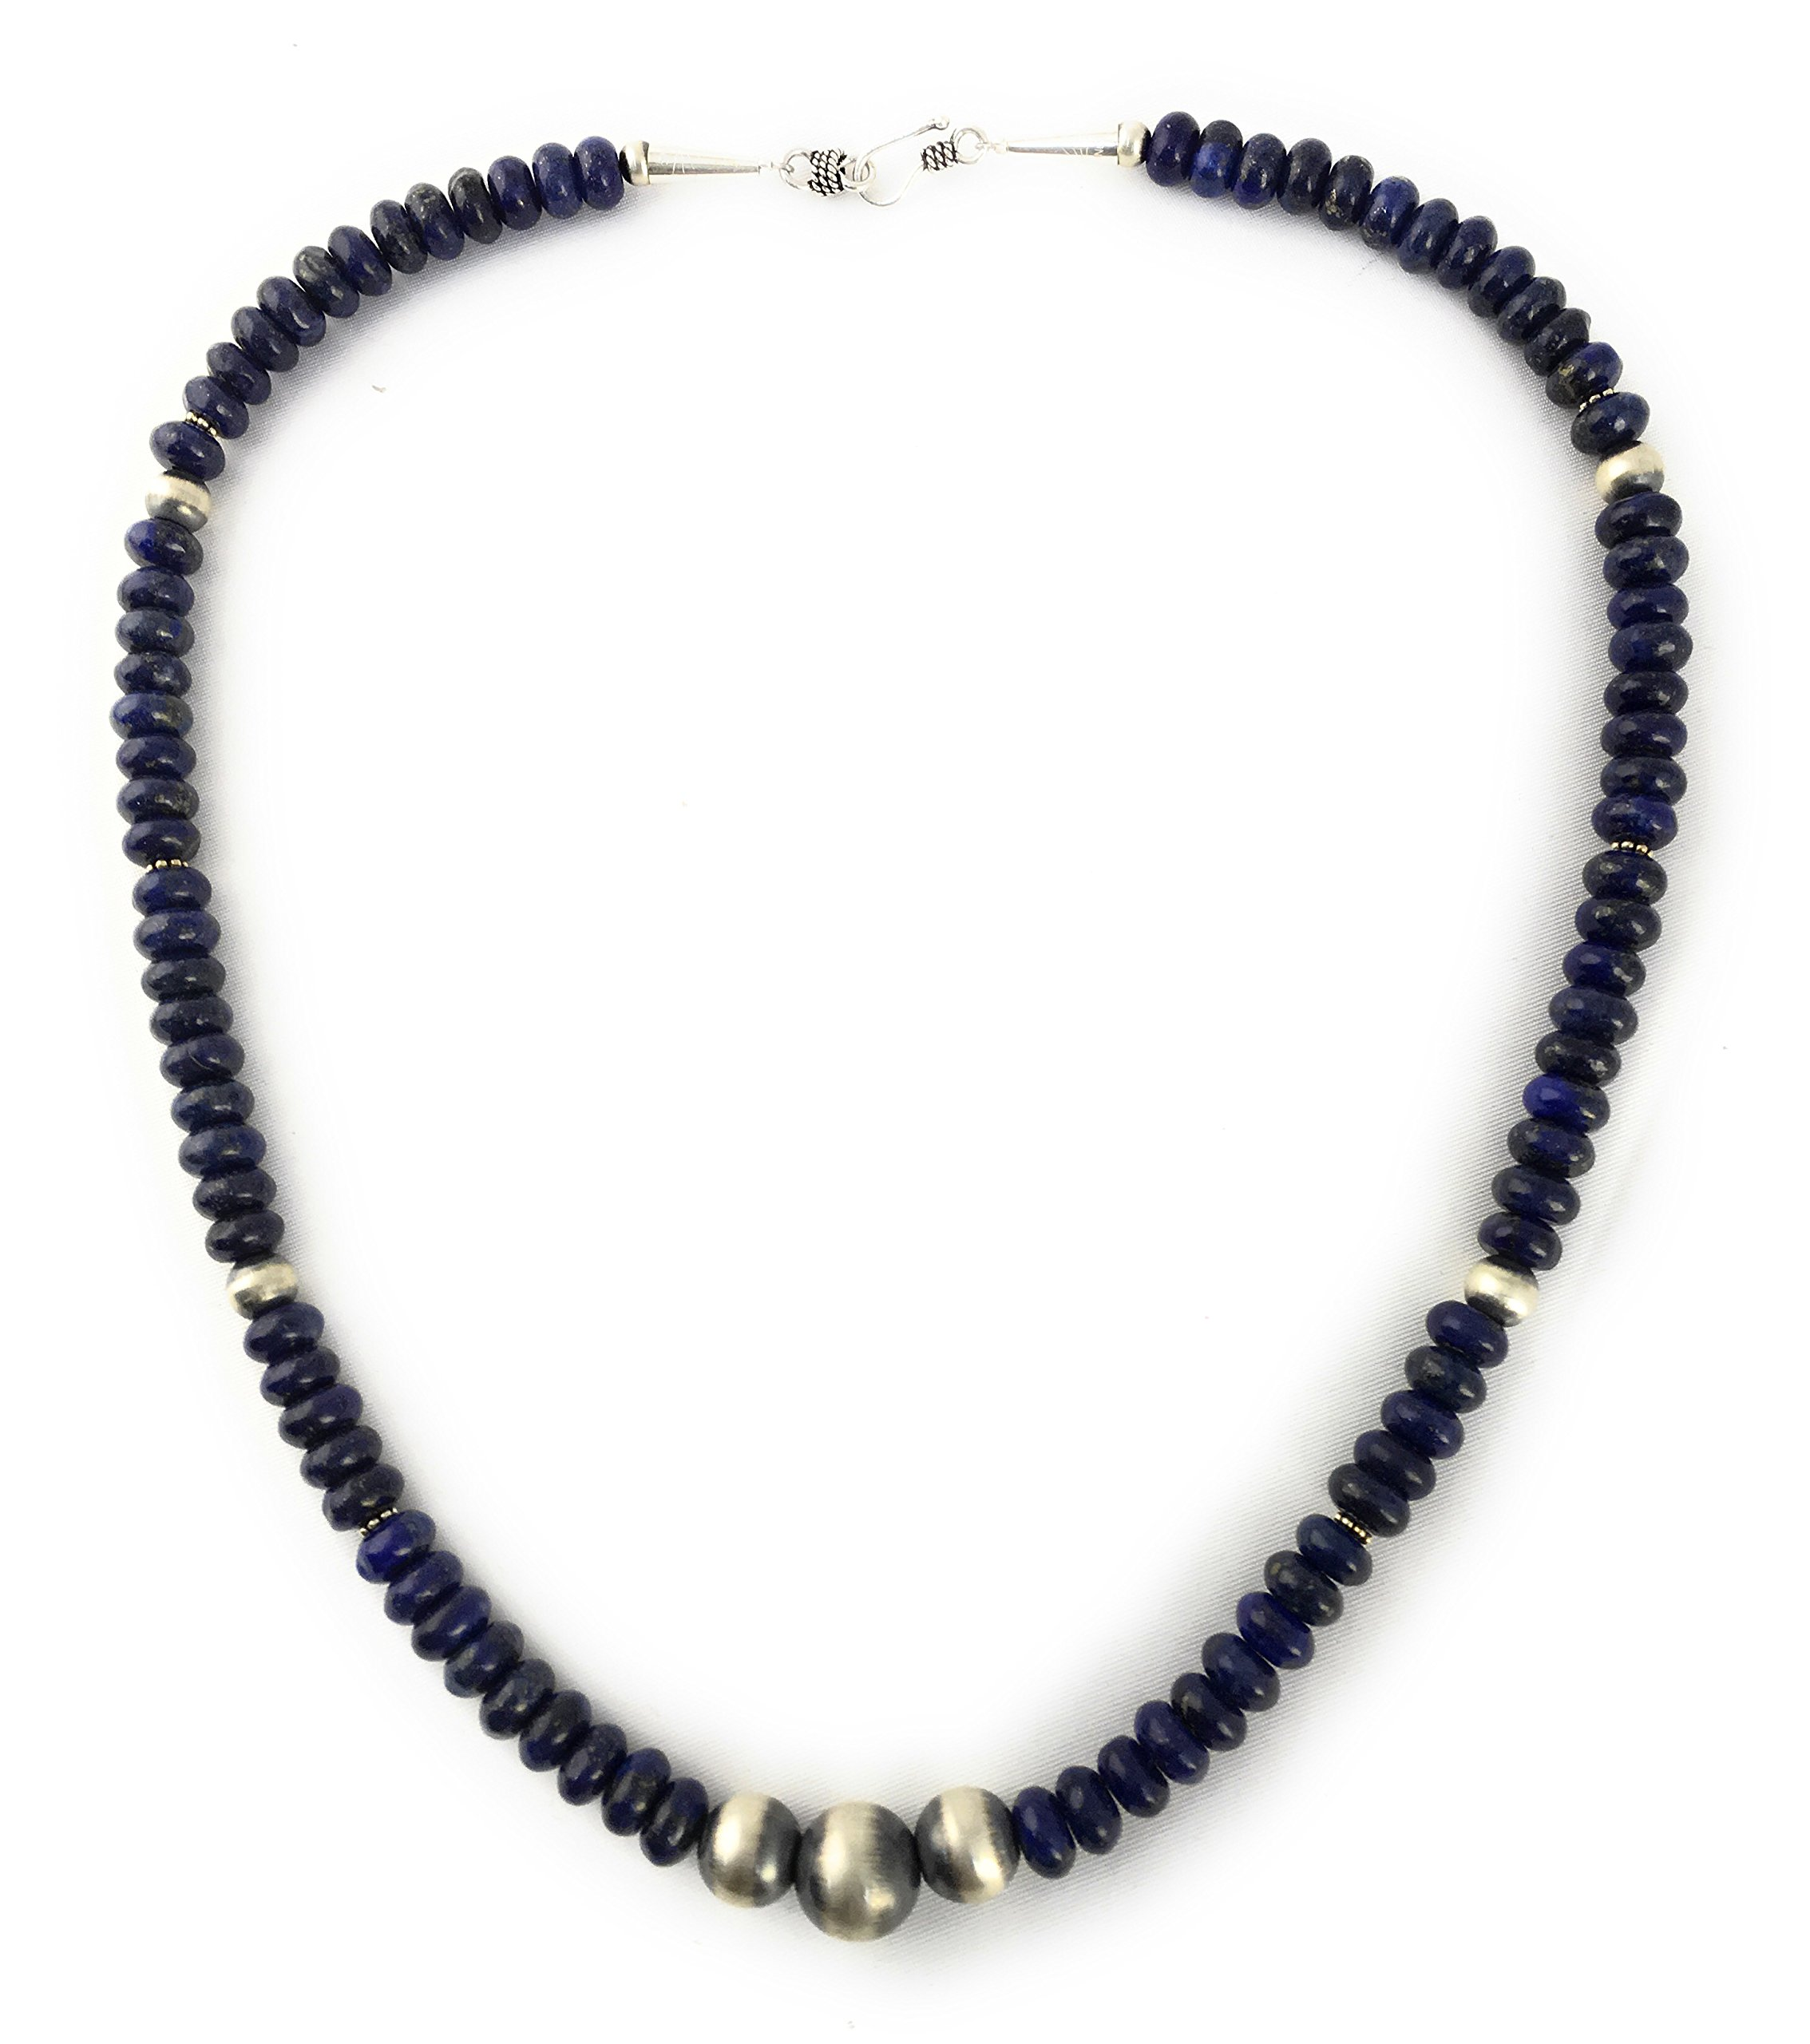 Masha Storewide Sale ! Sterling Silver Necklace By Lapis, Saucer Beads, Made in USA - Exclusive Southwestern Handmade Jewelry, 20'' in Length Gift